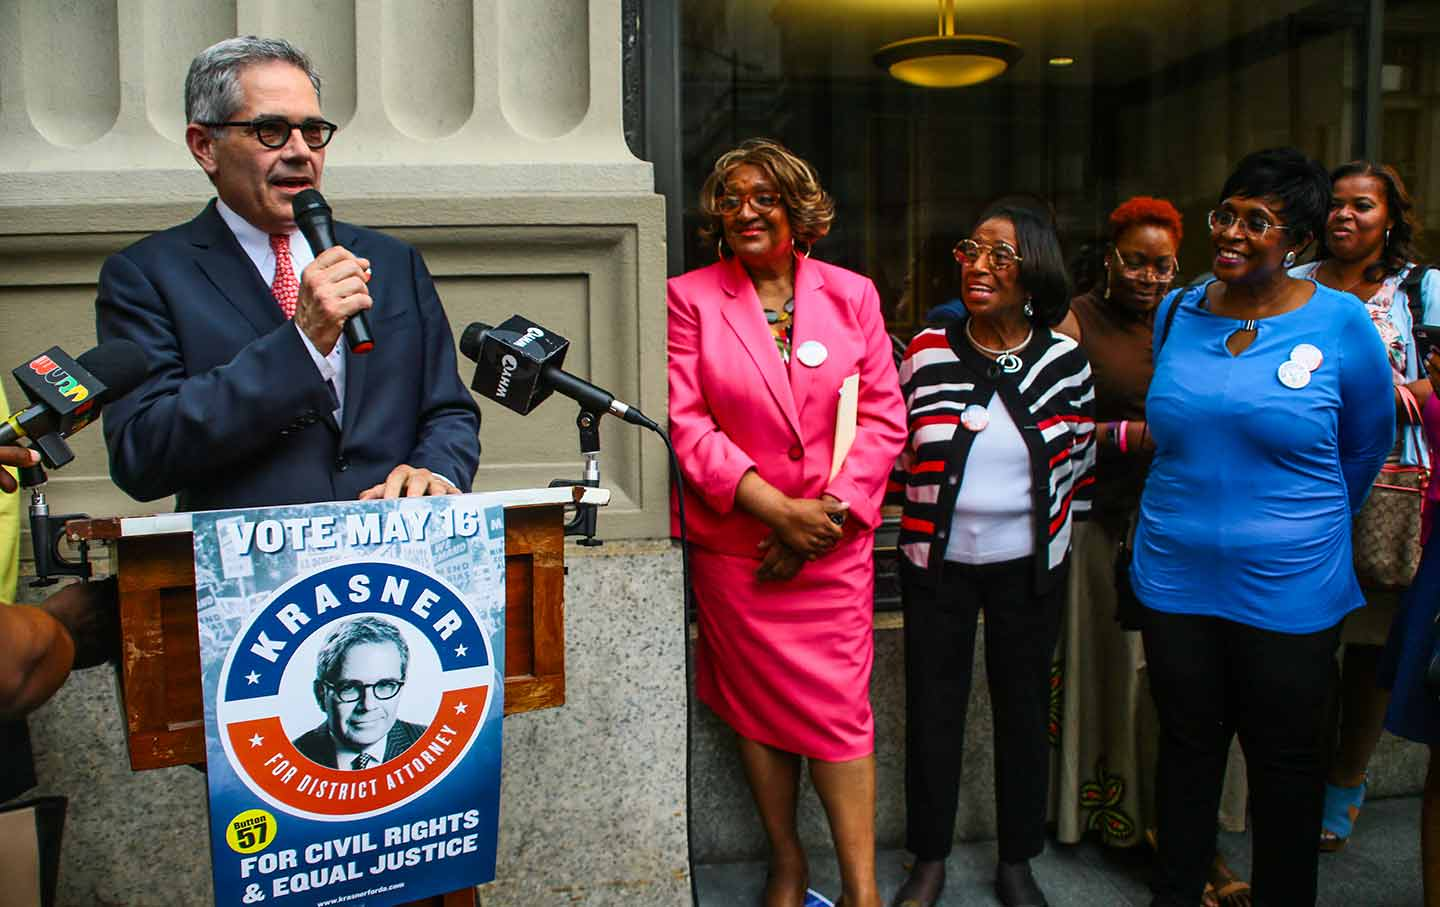 larry krasner endorsement